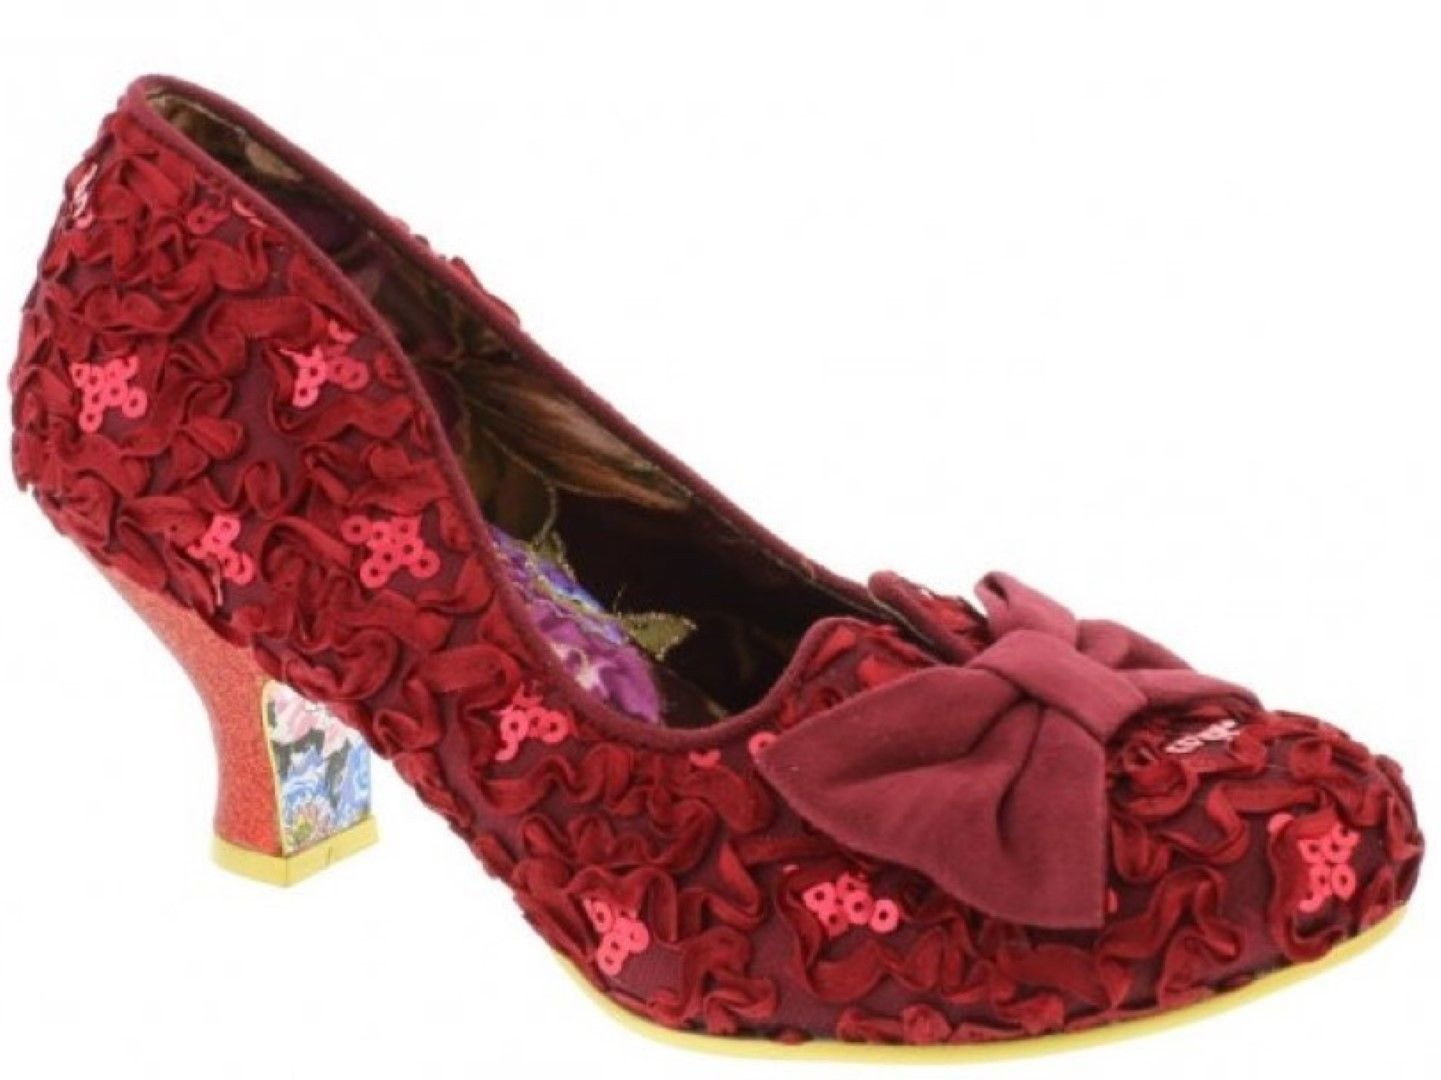 IRREGULAR CHOICE DAZZLE RAZZLE RED LACE EFFECT LOW HEEL